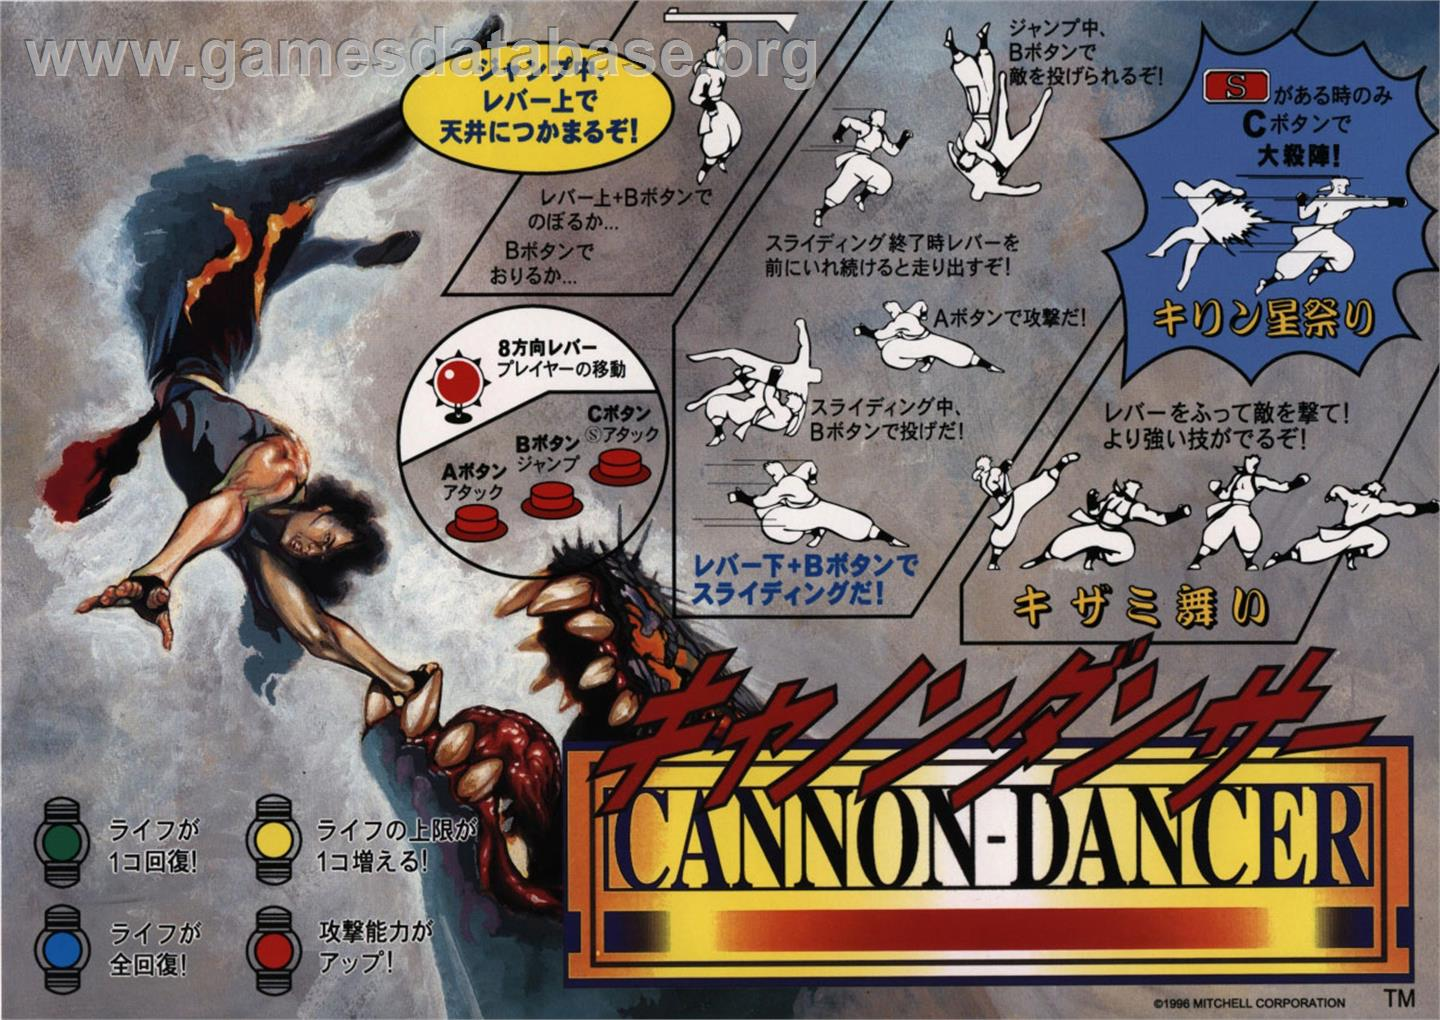 Cannon Dancer - Arcade - Artwork - Advert